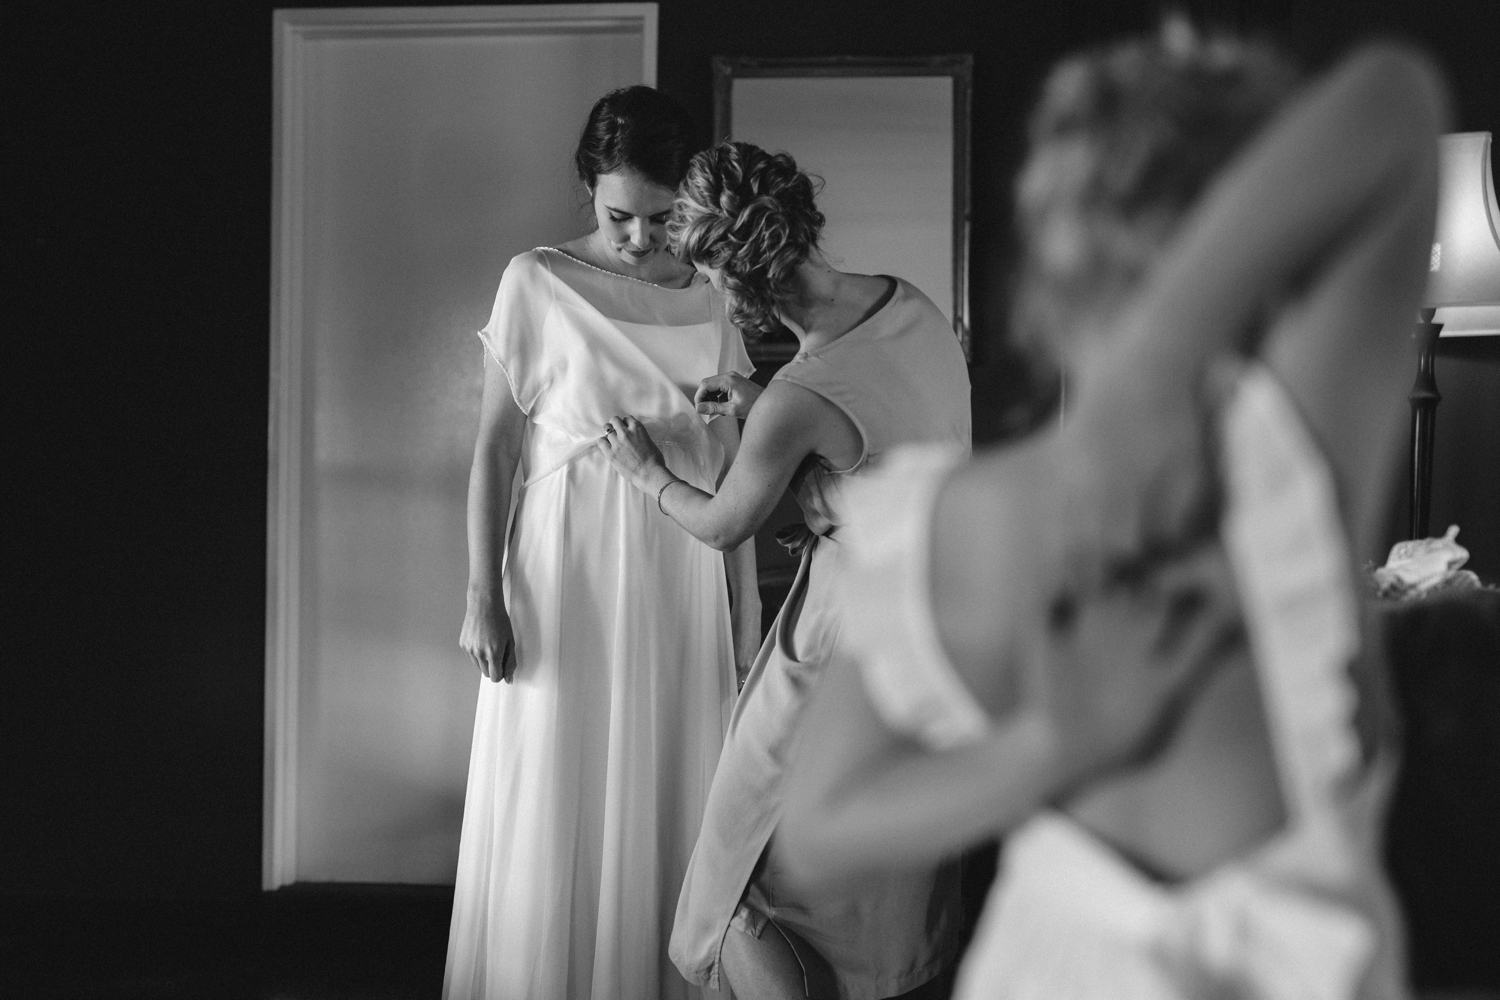 Bridesmaid Helping Bride Get Dressed In Simple Elegant Classic Layered Wedding Dress